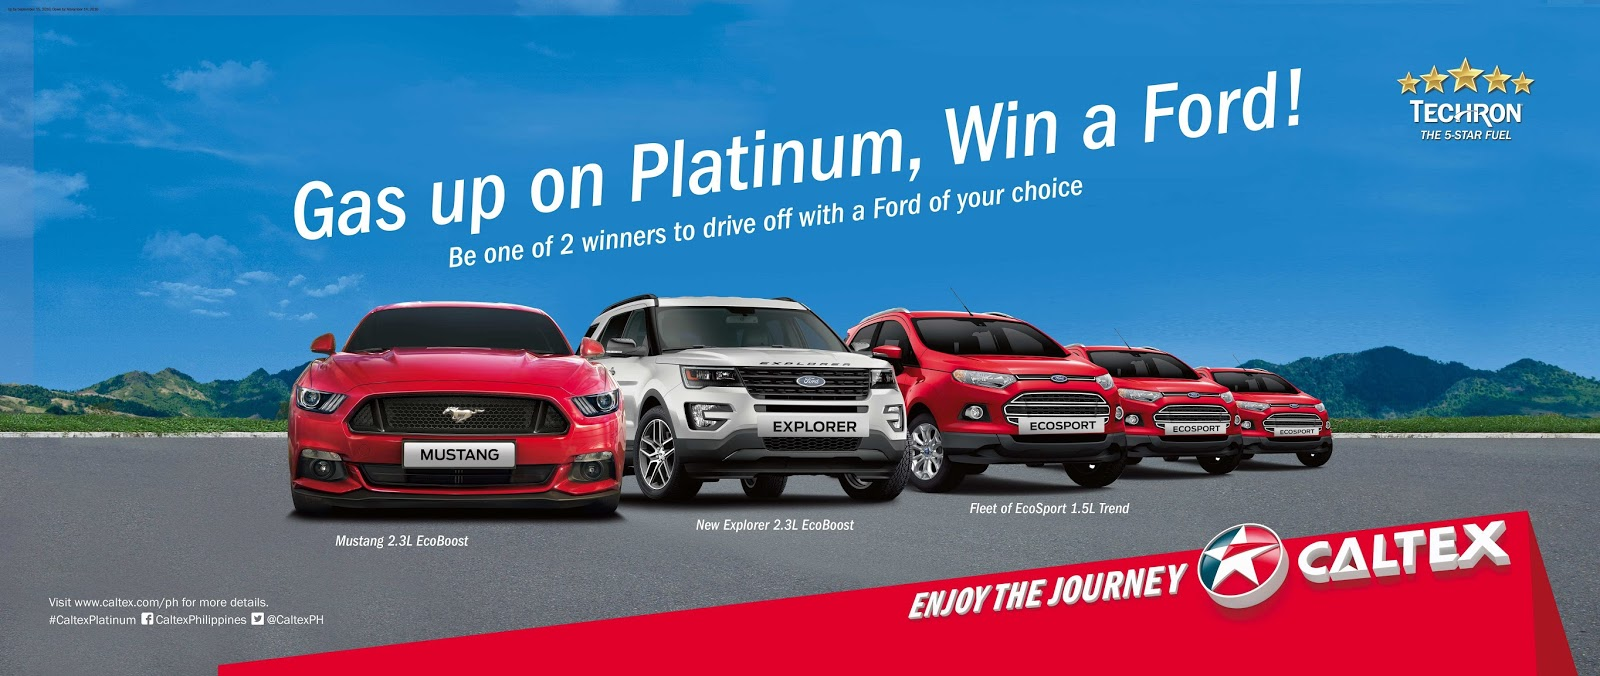 Caltex's Gas Up On Platinum, Win a Ford!